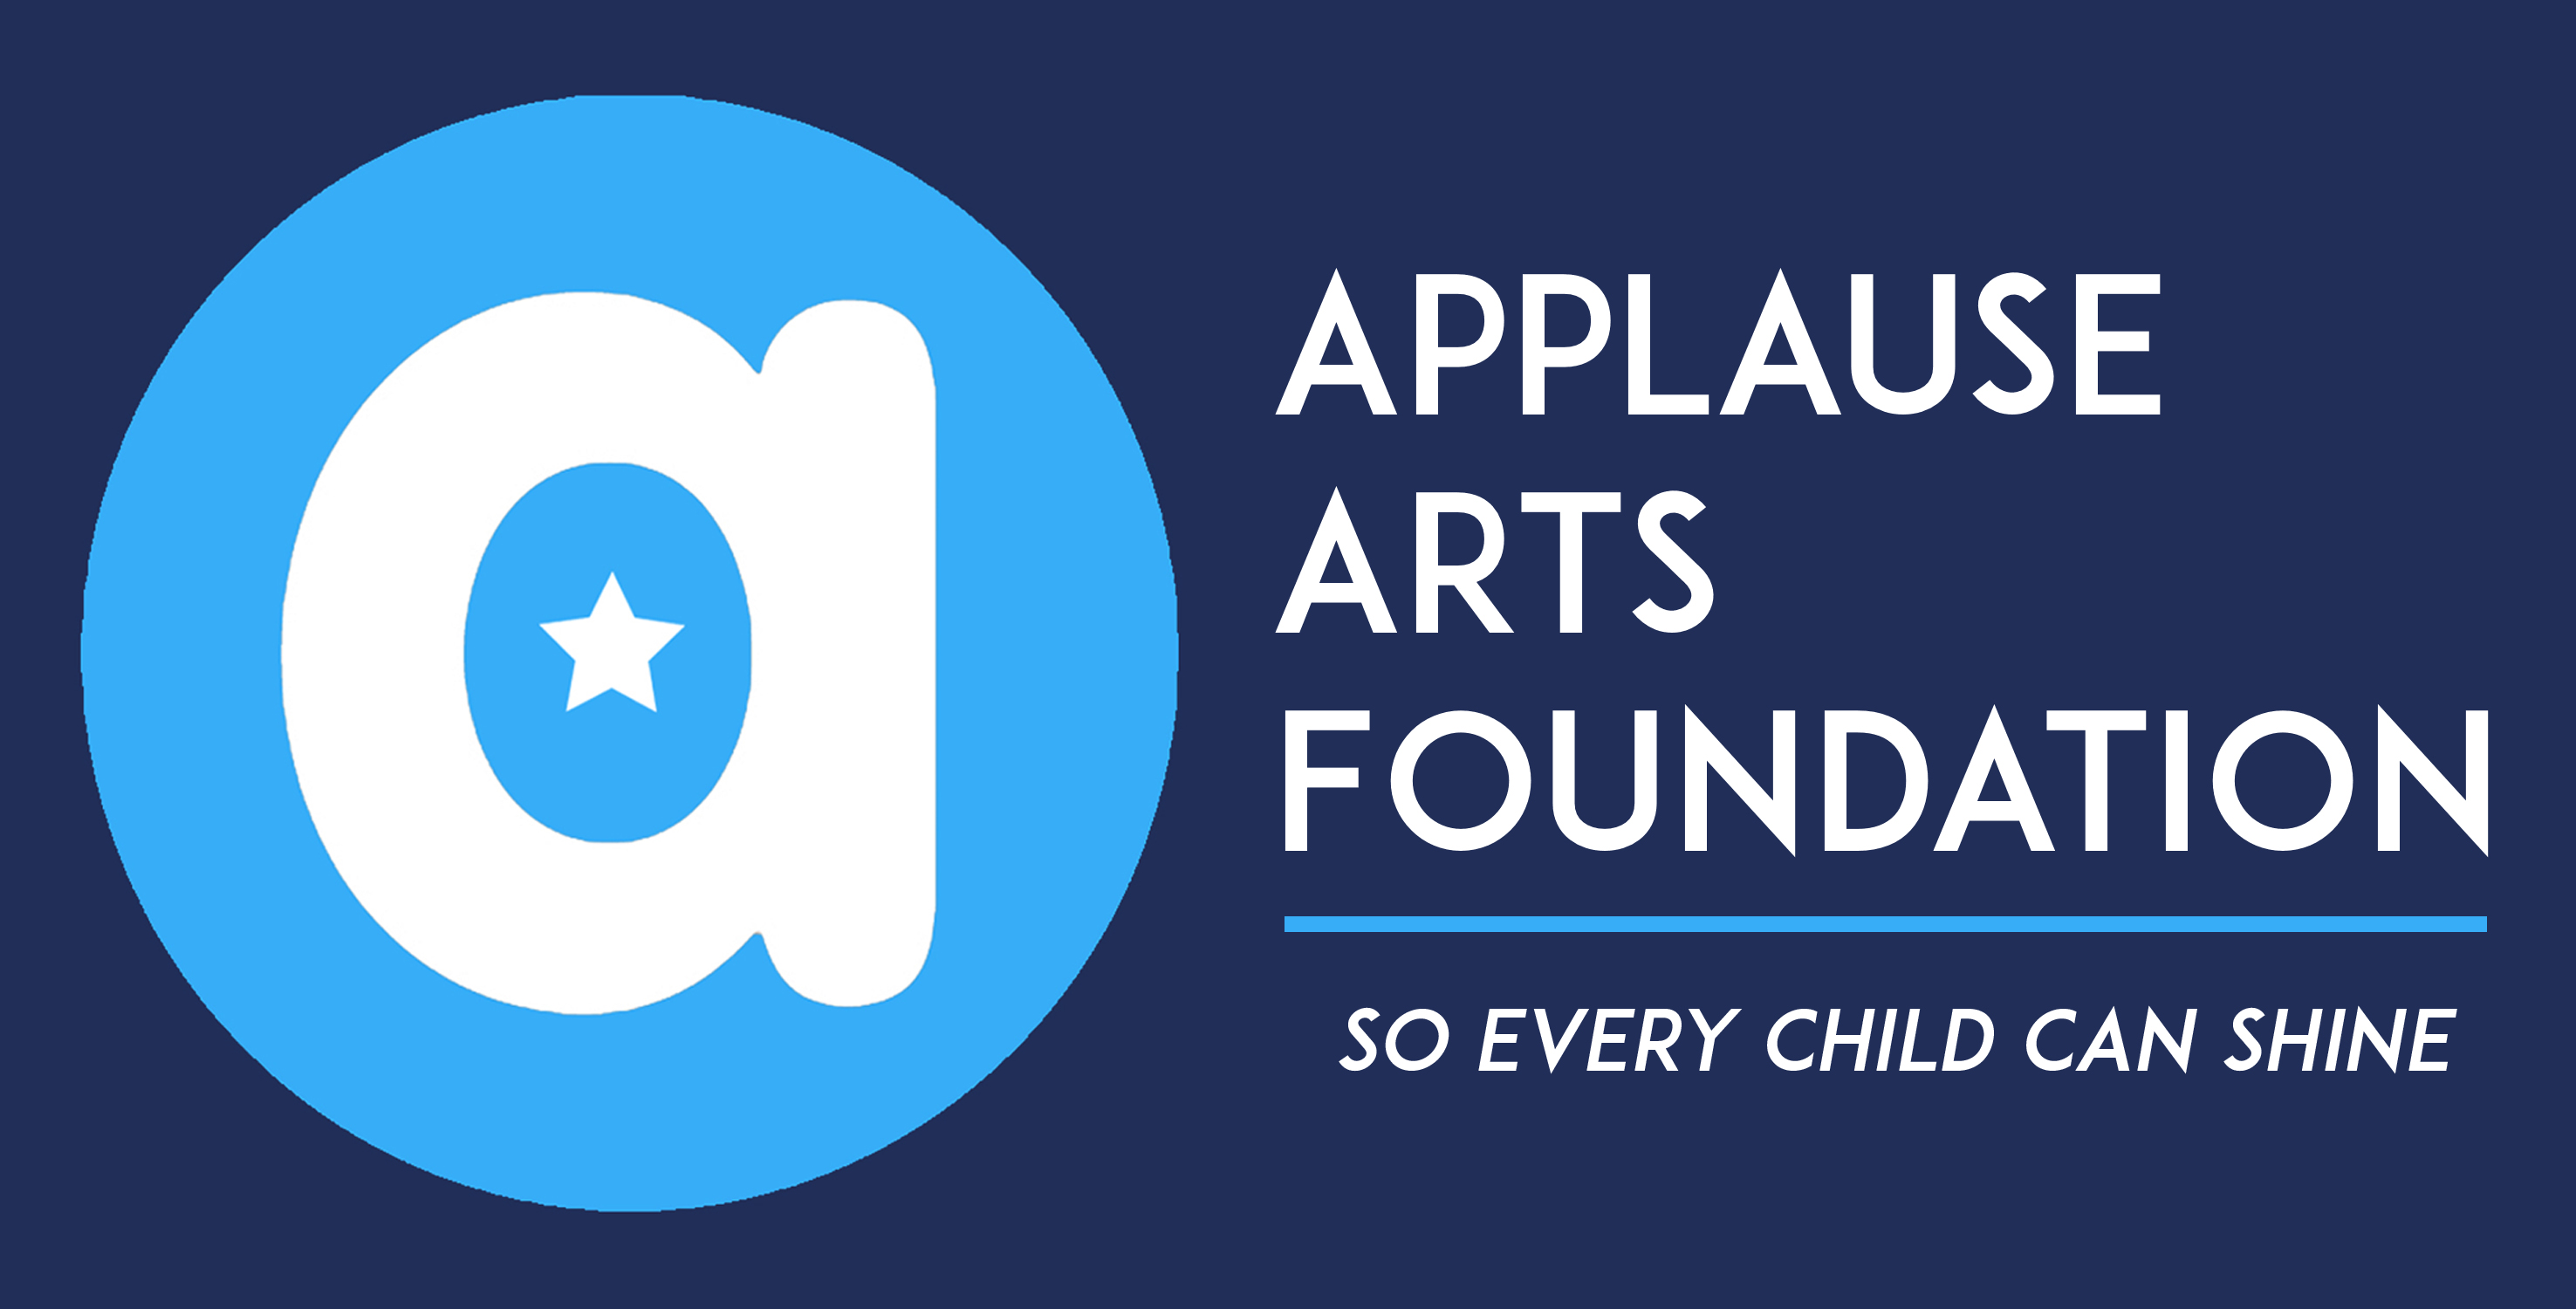 Applause Arts Foundation